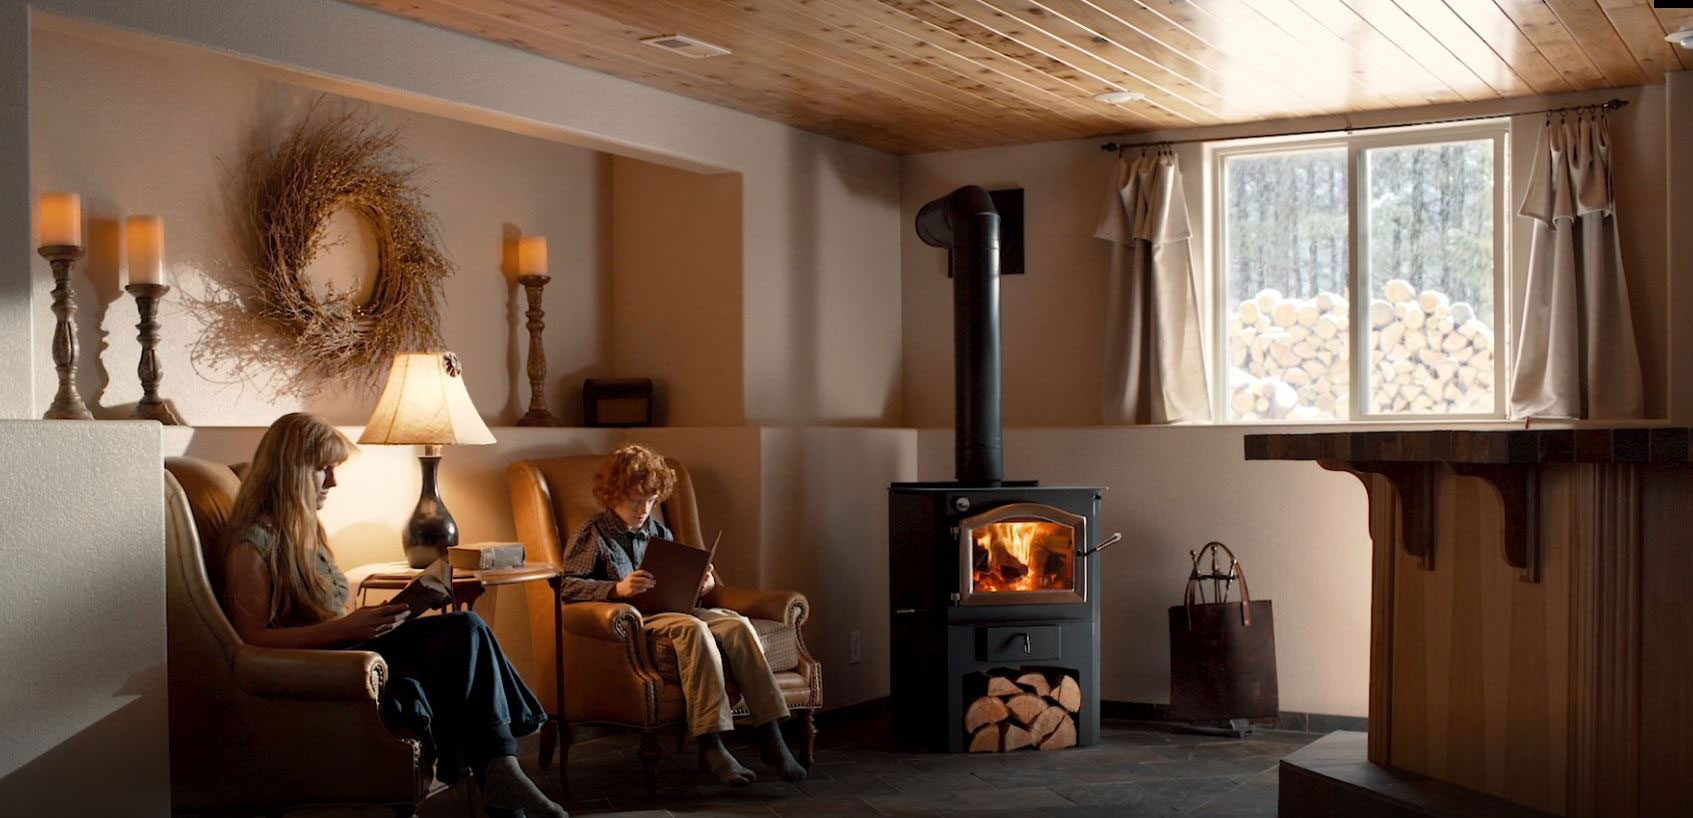 Home is where the hearth is - Wood Stoves